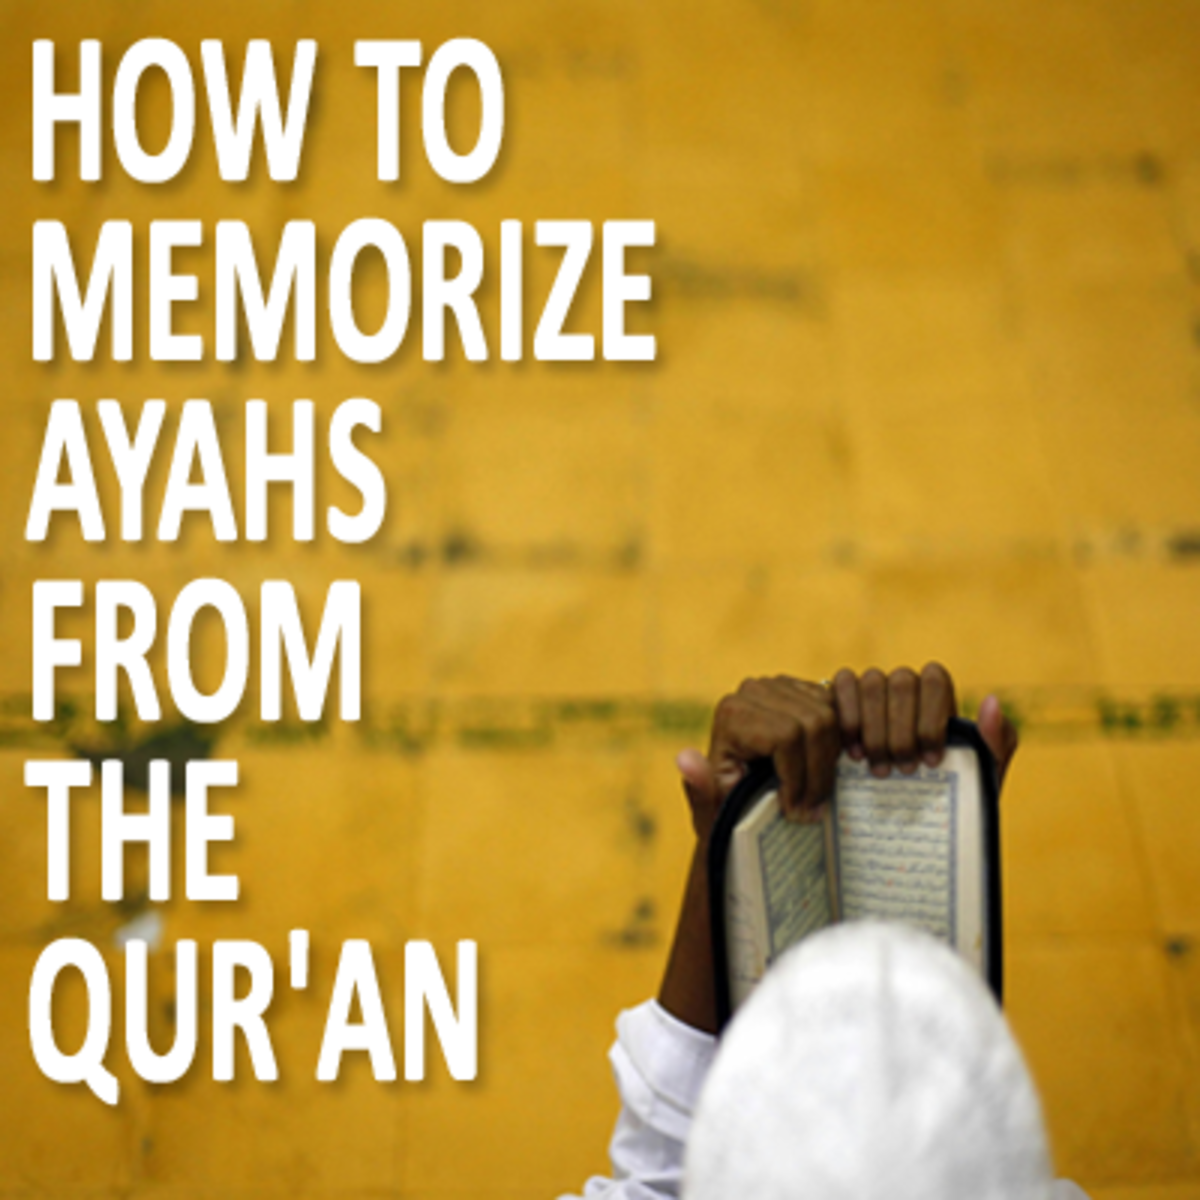 How to Memorize Ayahs From the Qur'an